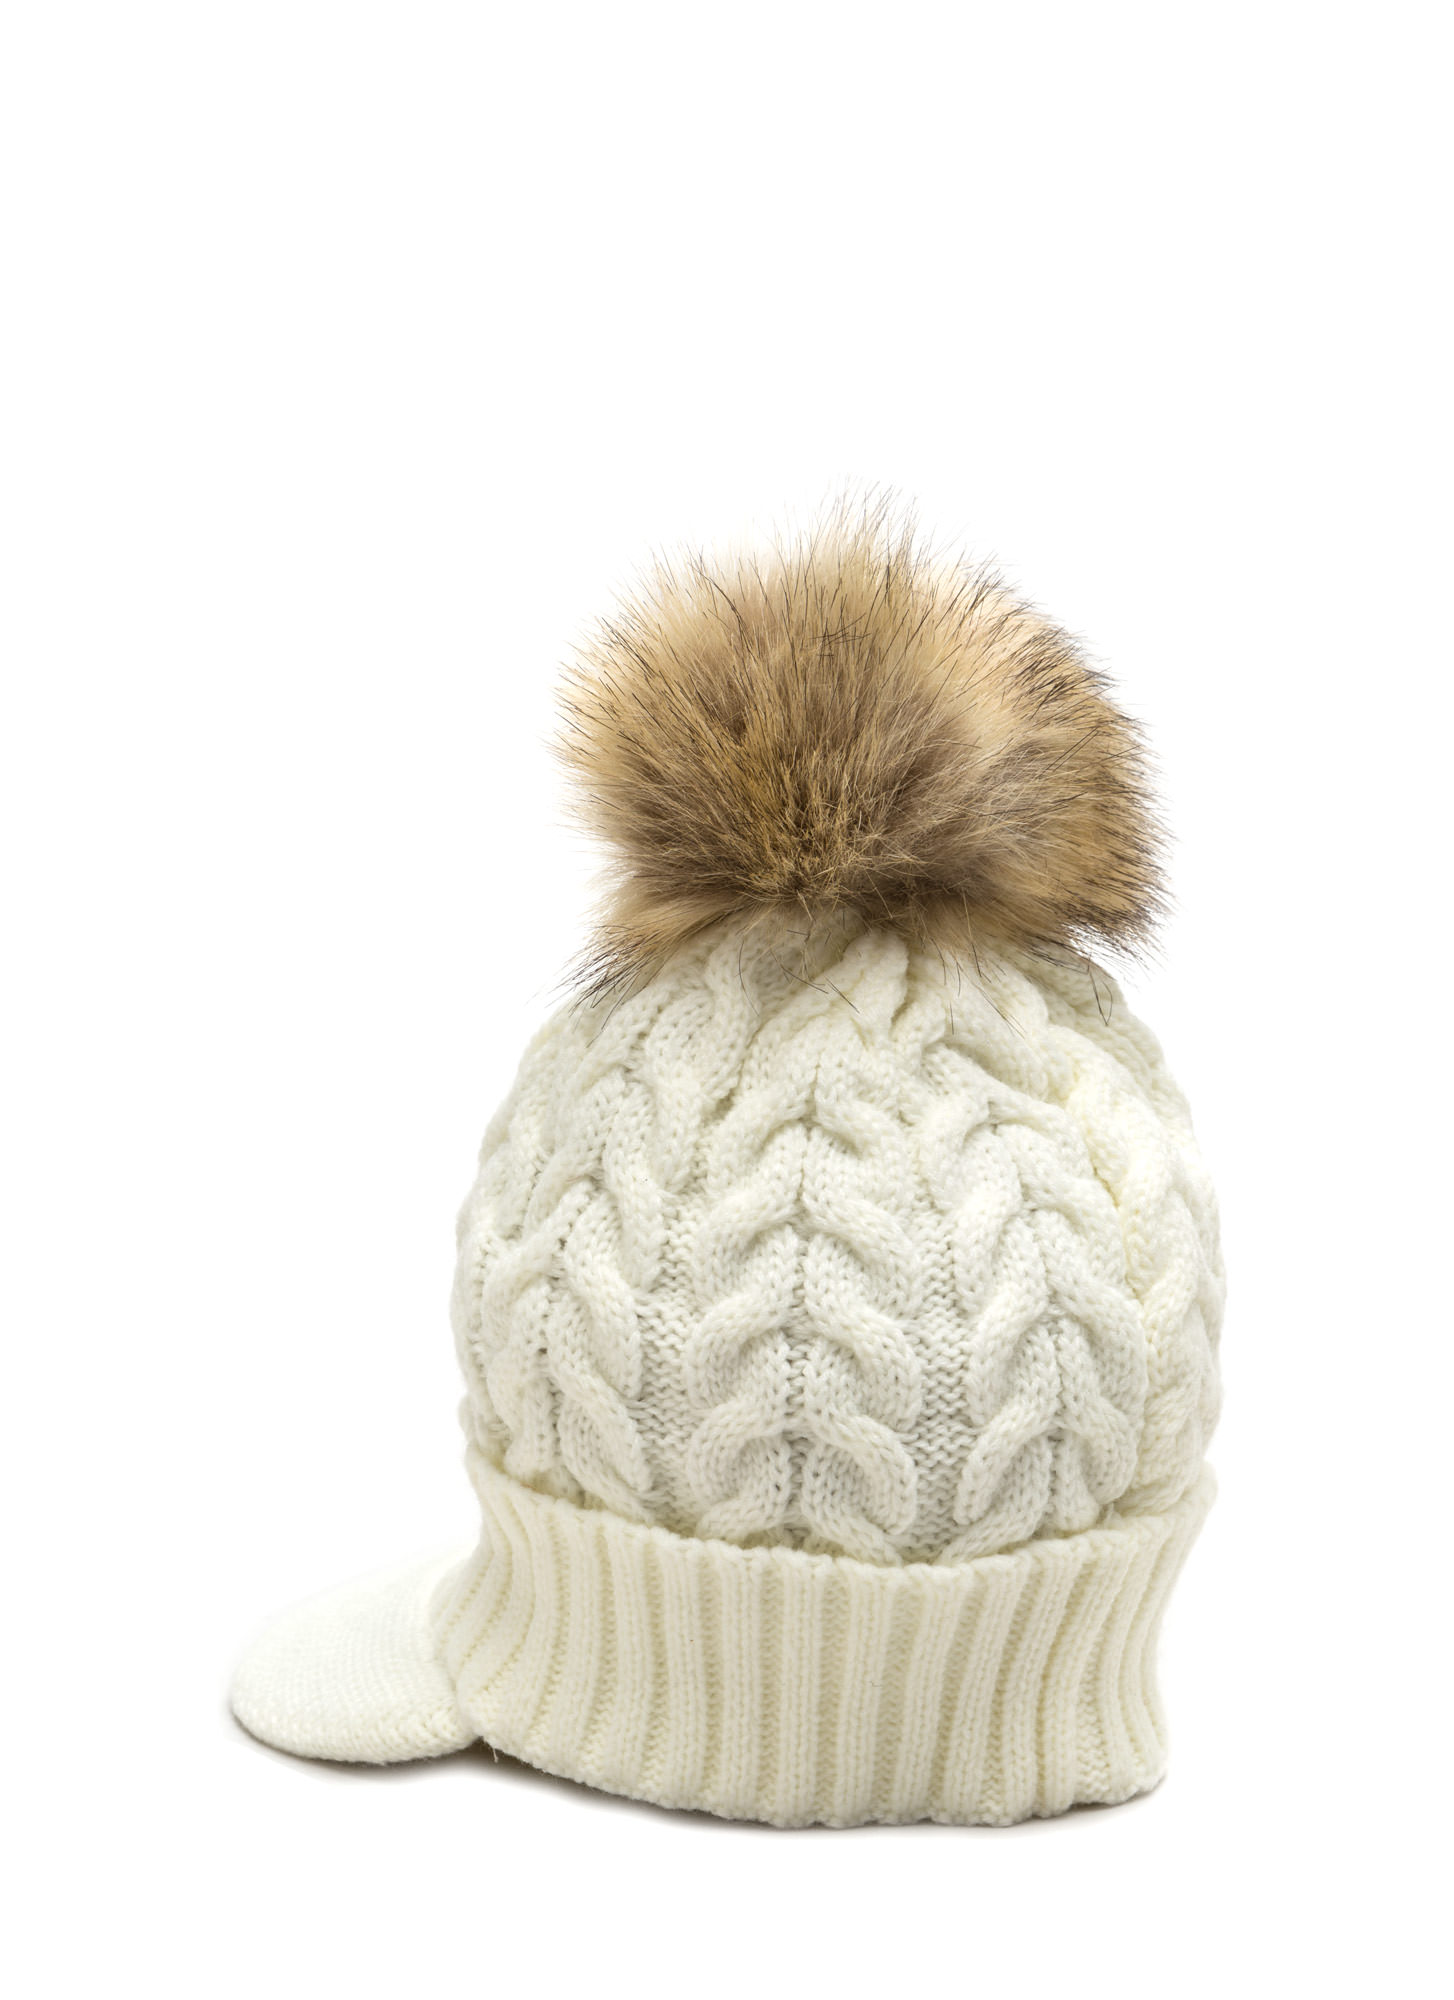 Fur-Ever Knit Pom-Pom Beanie IVORY